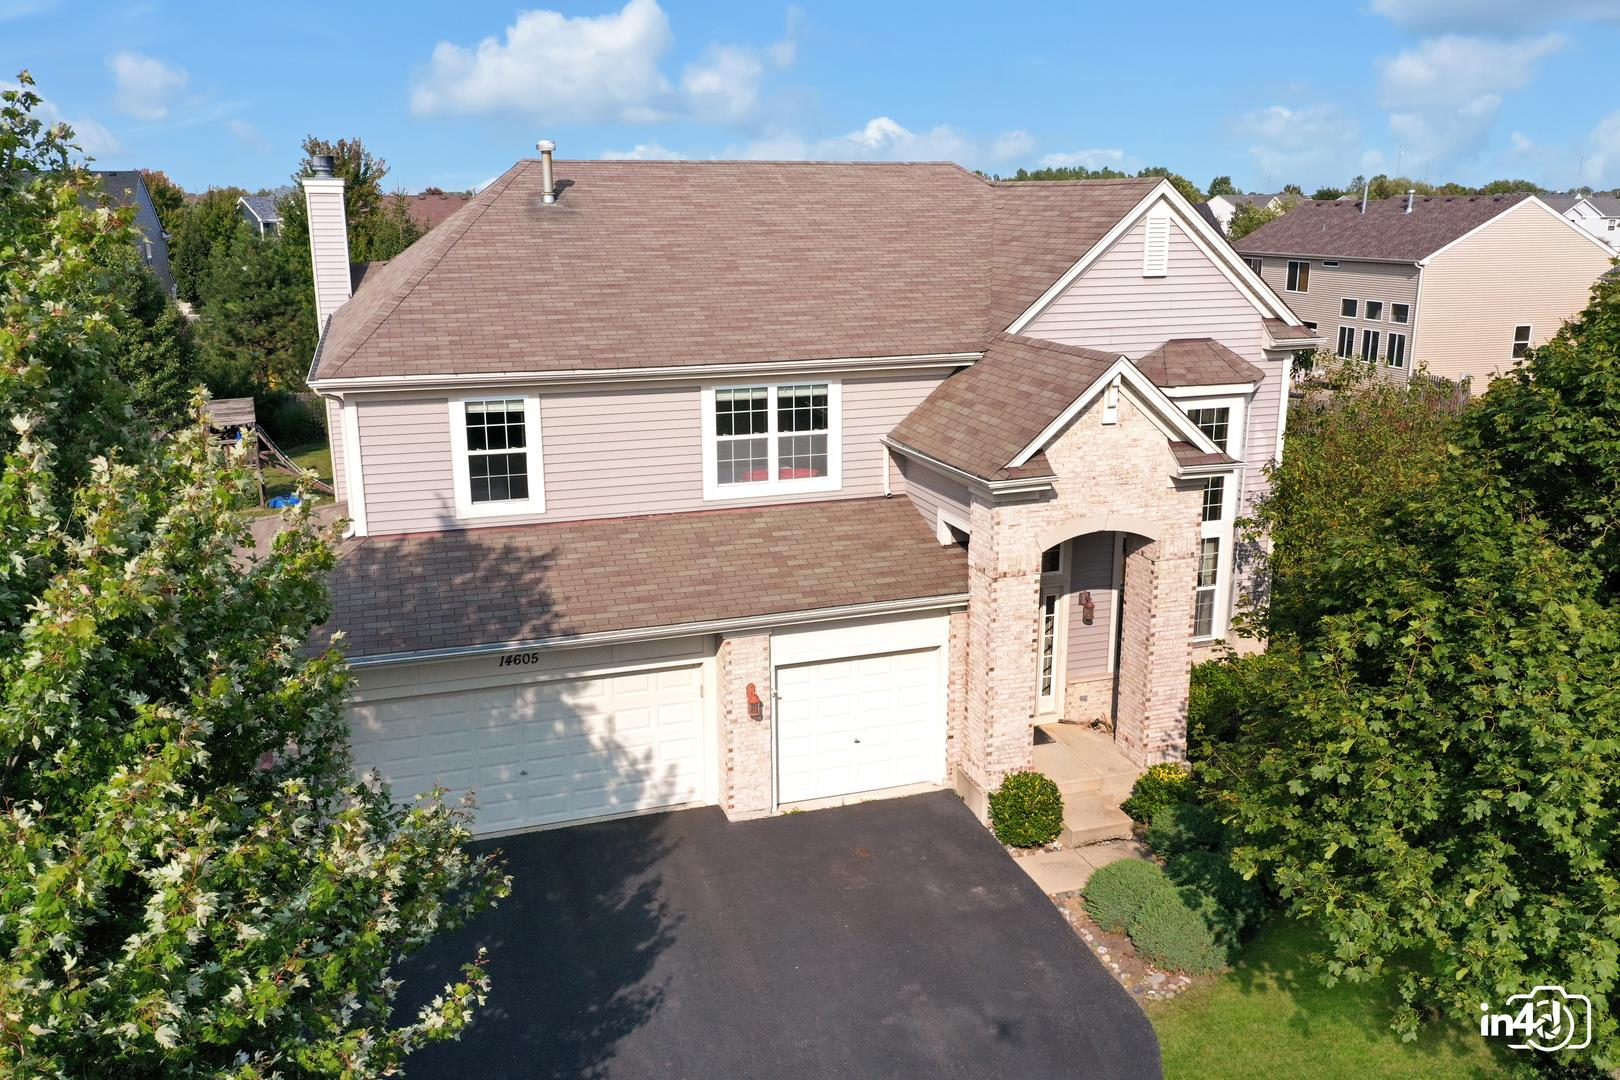 14605 Colonial Parkway, Plainfield, IL 60544 - #: 10858999